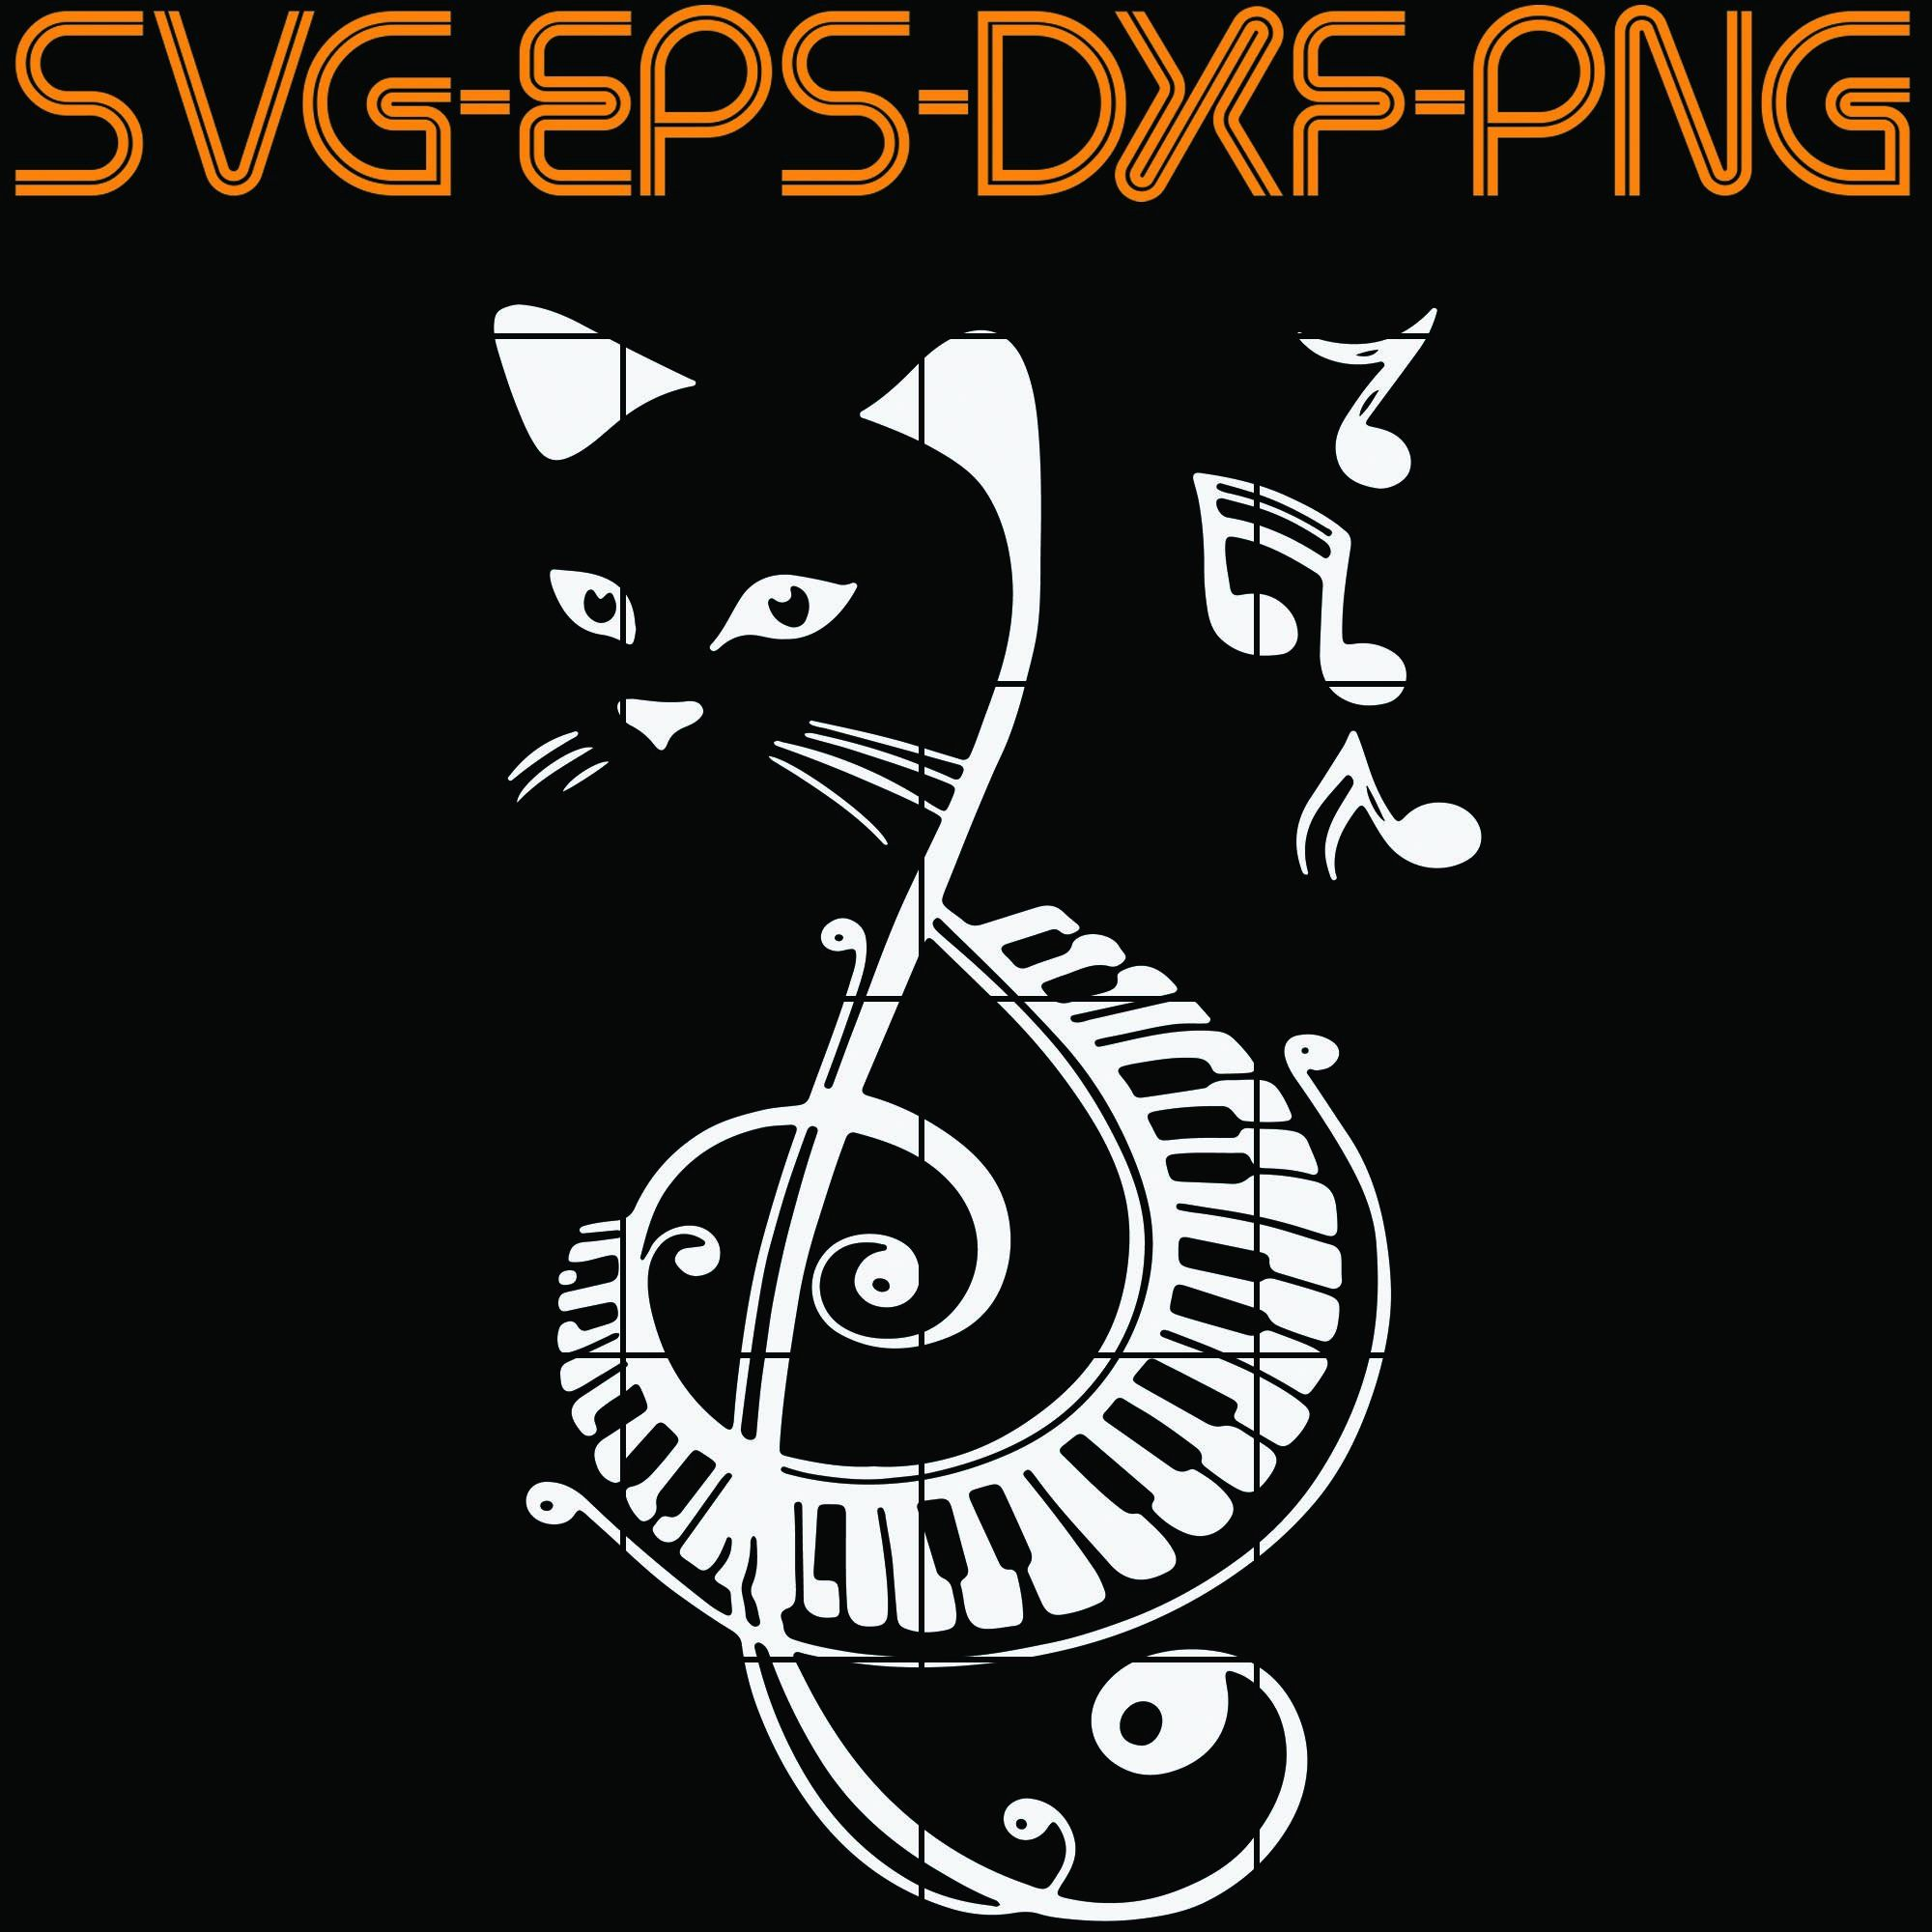 Cat musical instrument, Quotes, PNG, EPS, DXF, Digital